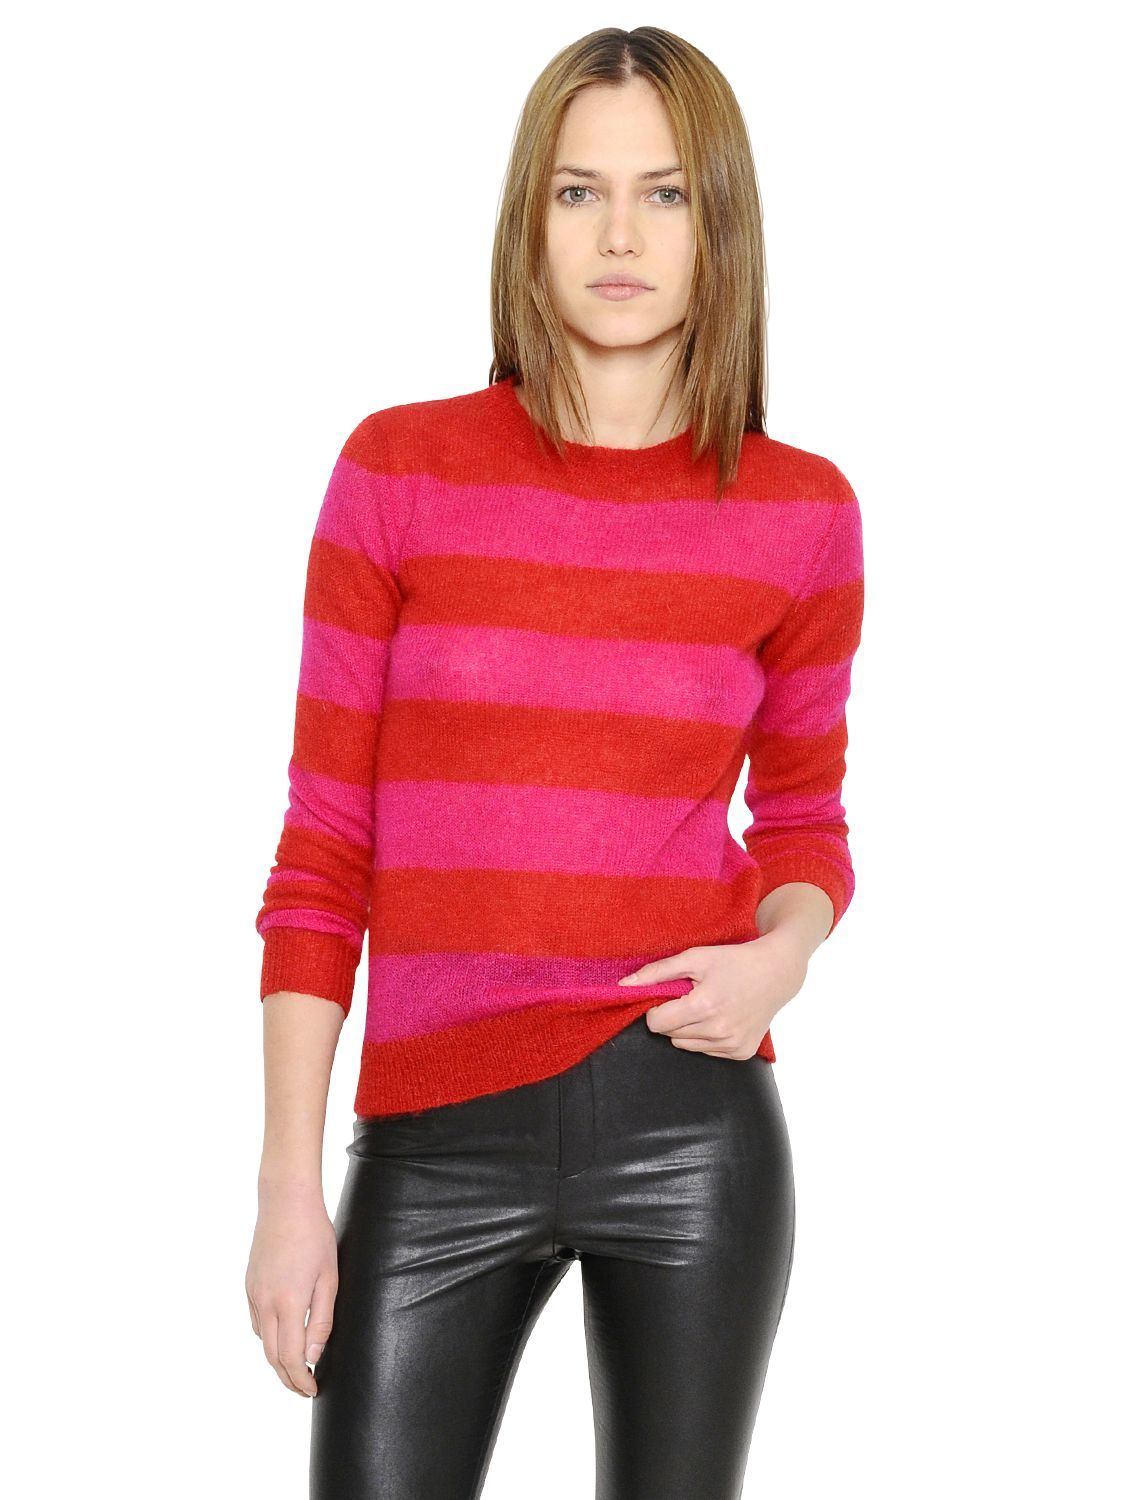 isabel-marant-etoile-redfuchsia-striped-mohair-wool-sweater-red ...